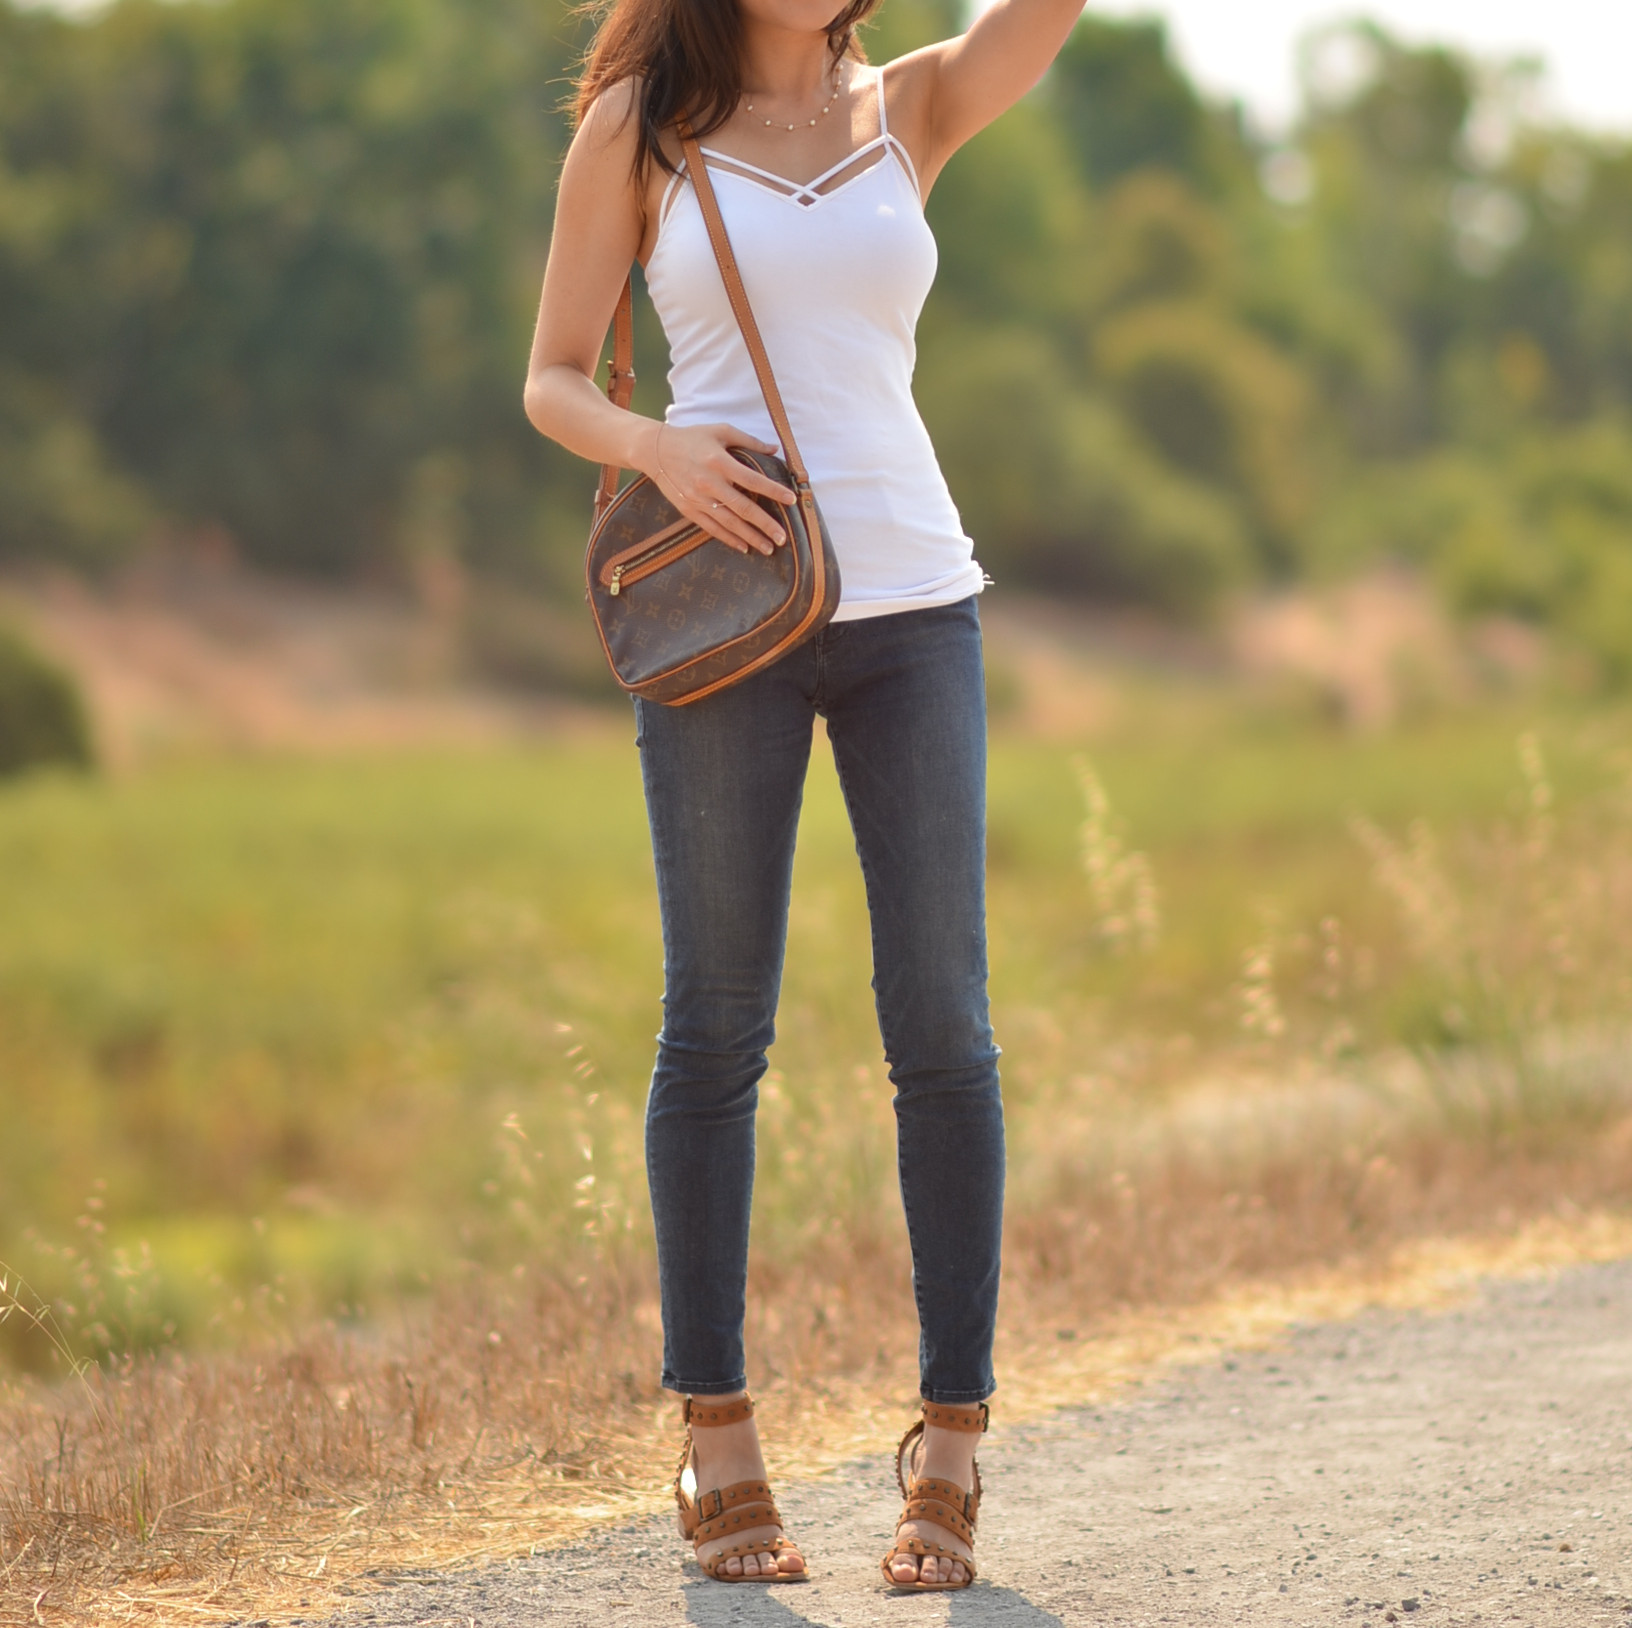 jeans white top outfit with designer Louis Vuitton shoulder bag